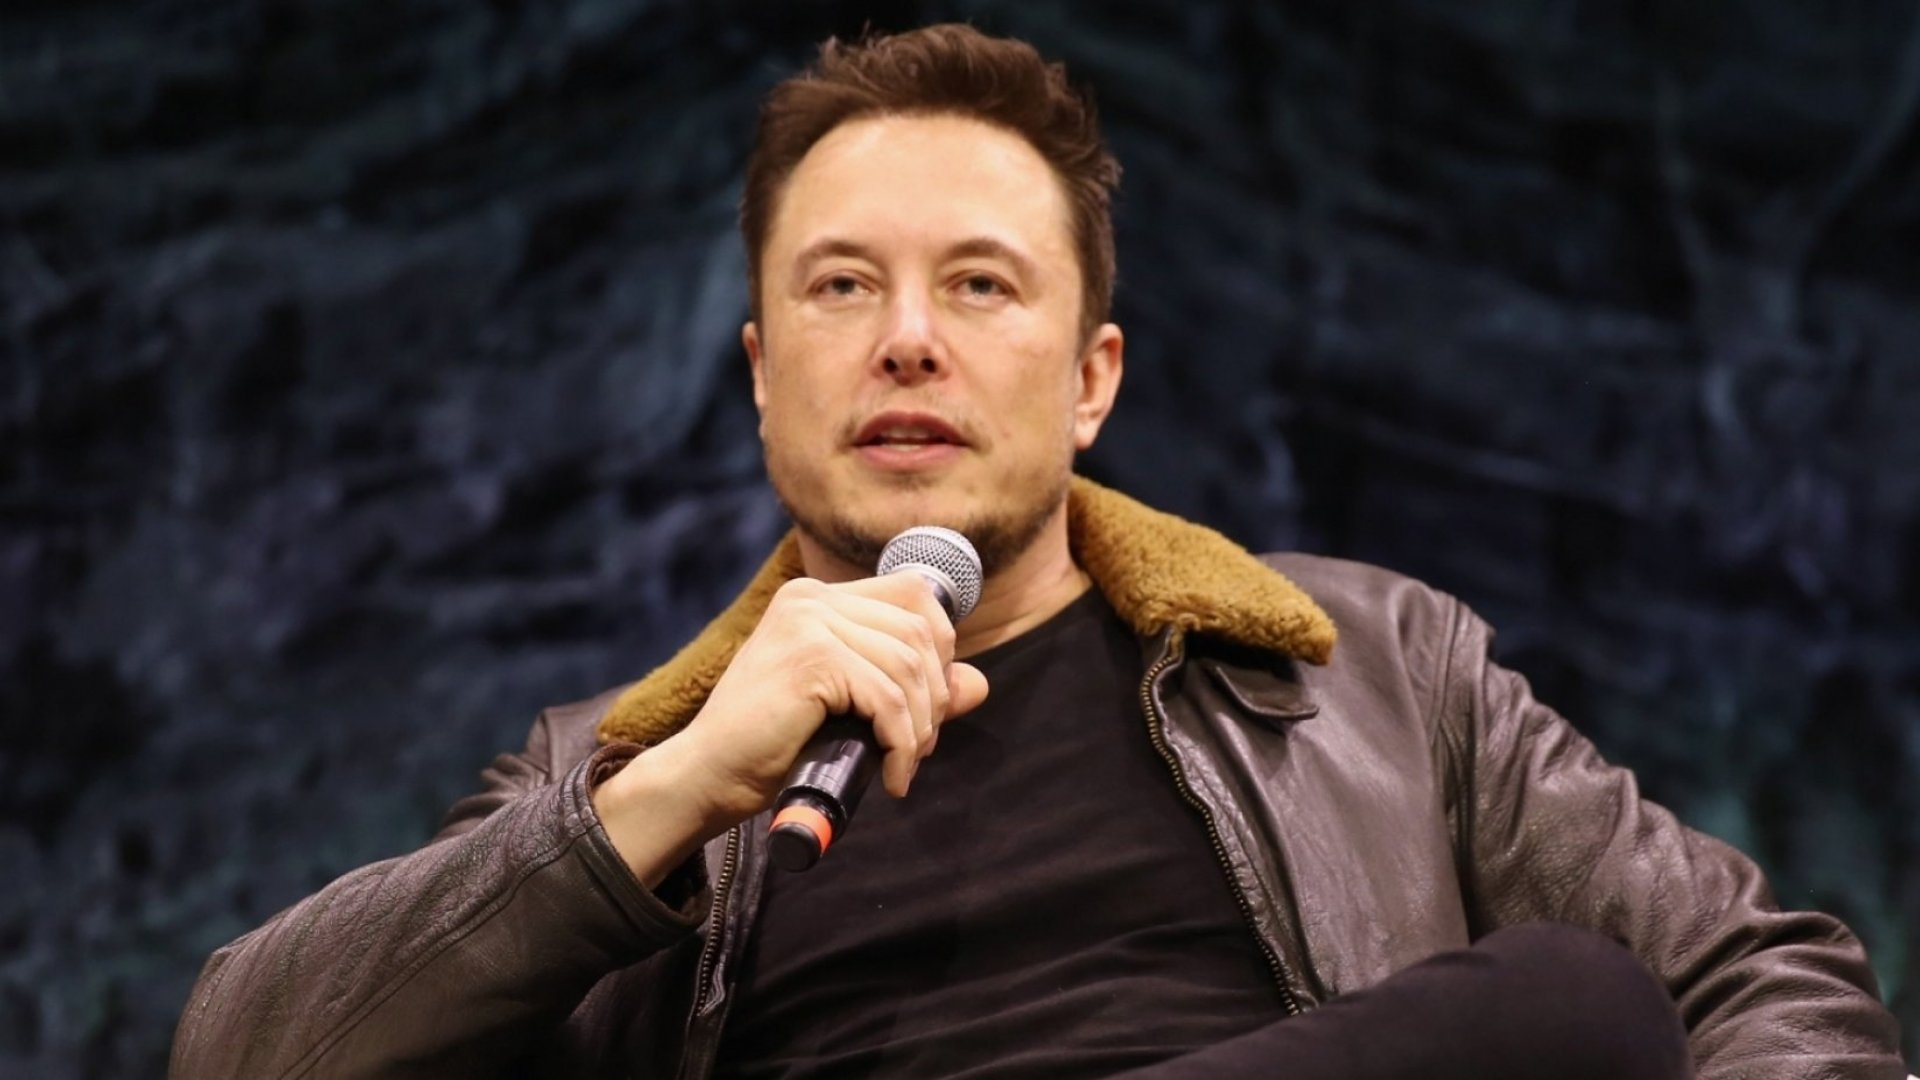 With a Single Tweet, Elon Musk Is in Hot Water (Again). Here's How He Can Escape